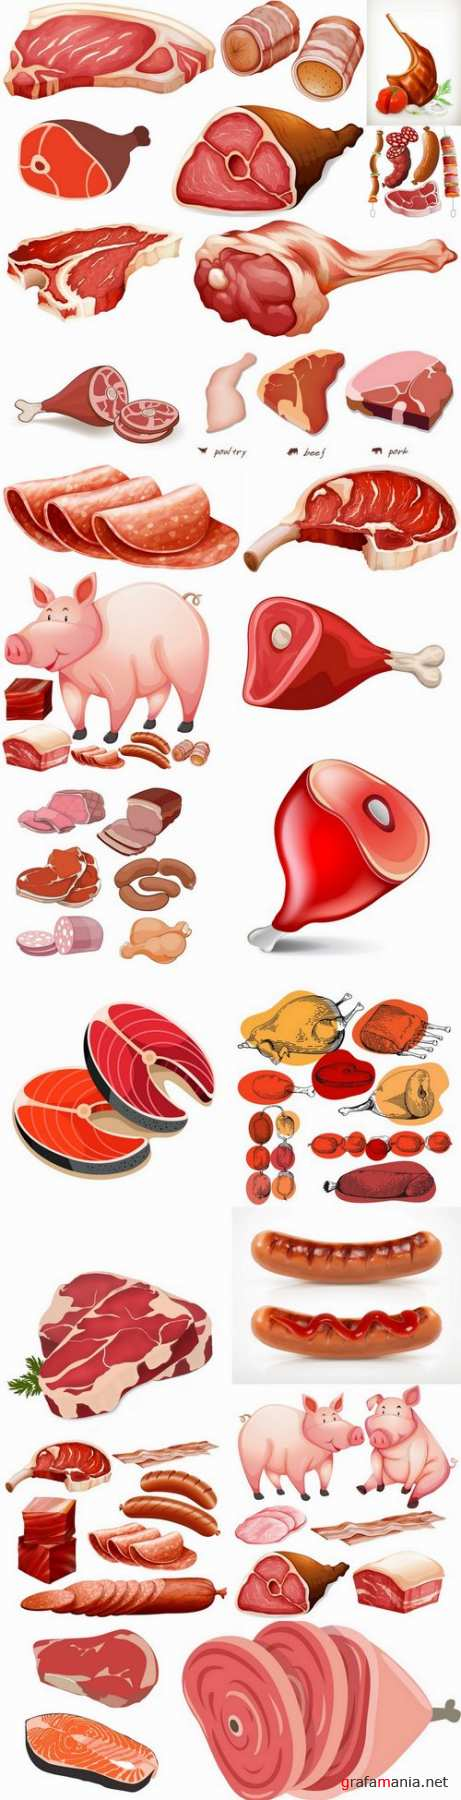 Meat beef pork sausage meat products 25 EPS